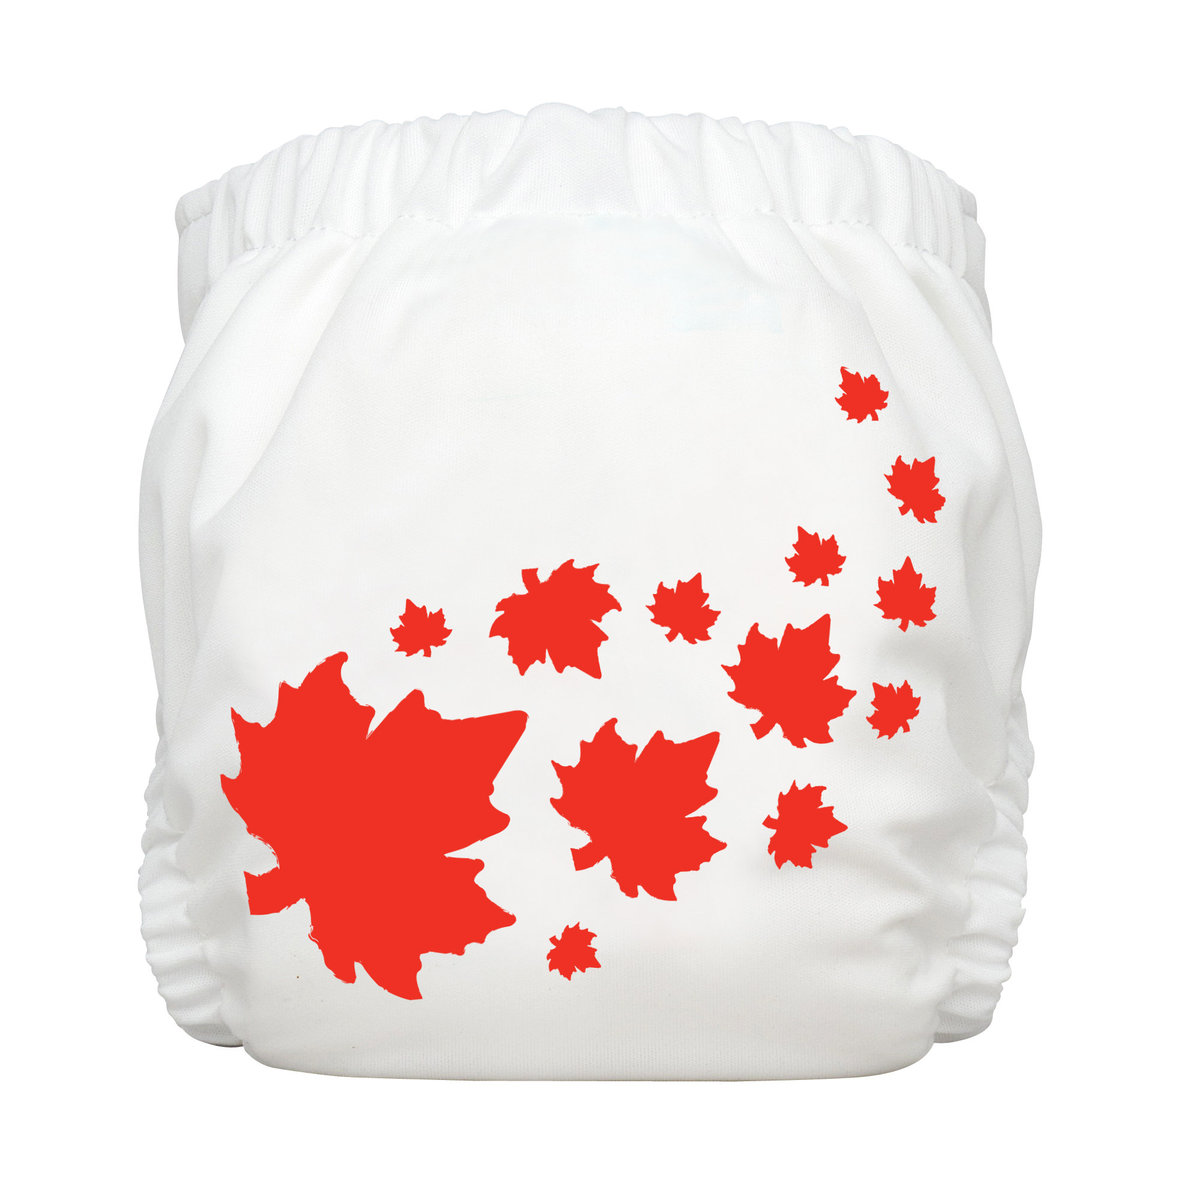 Reusable Infant Diaper Maple Leaf White (Each comes with 1 insert)